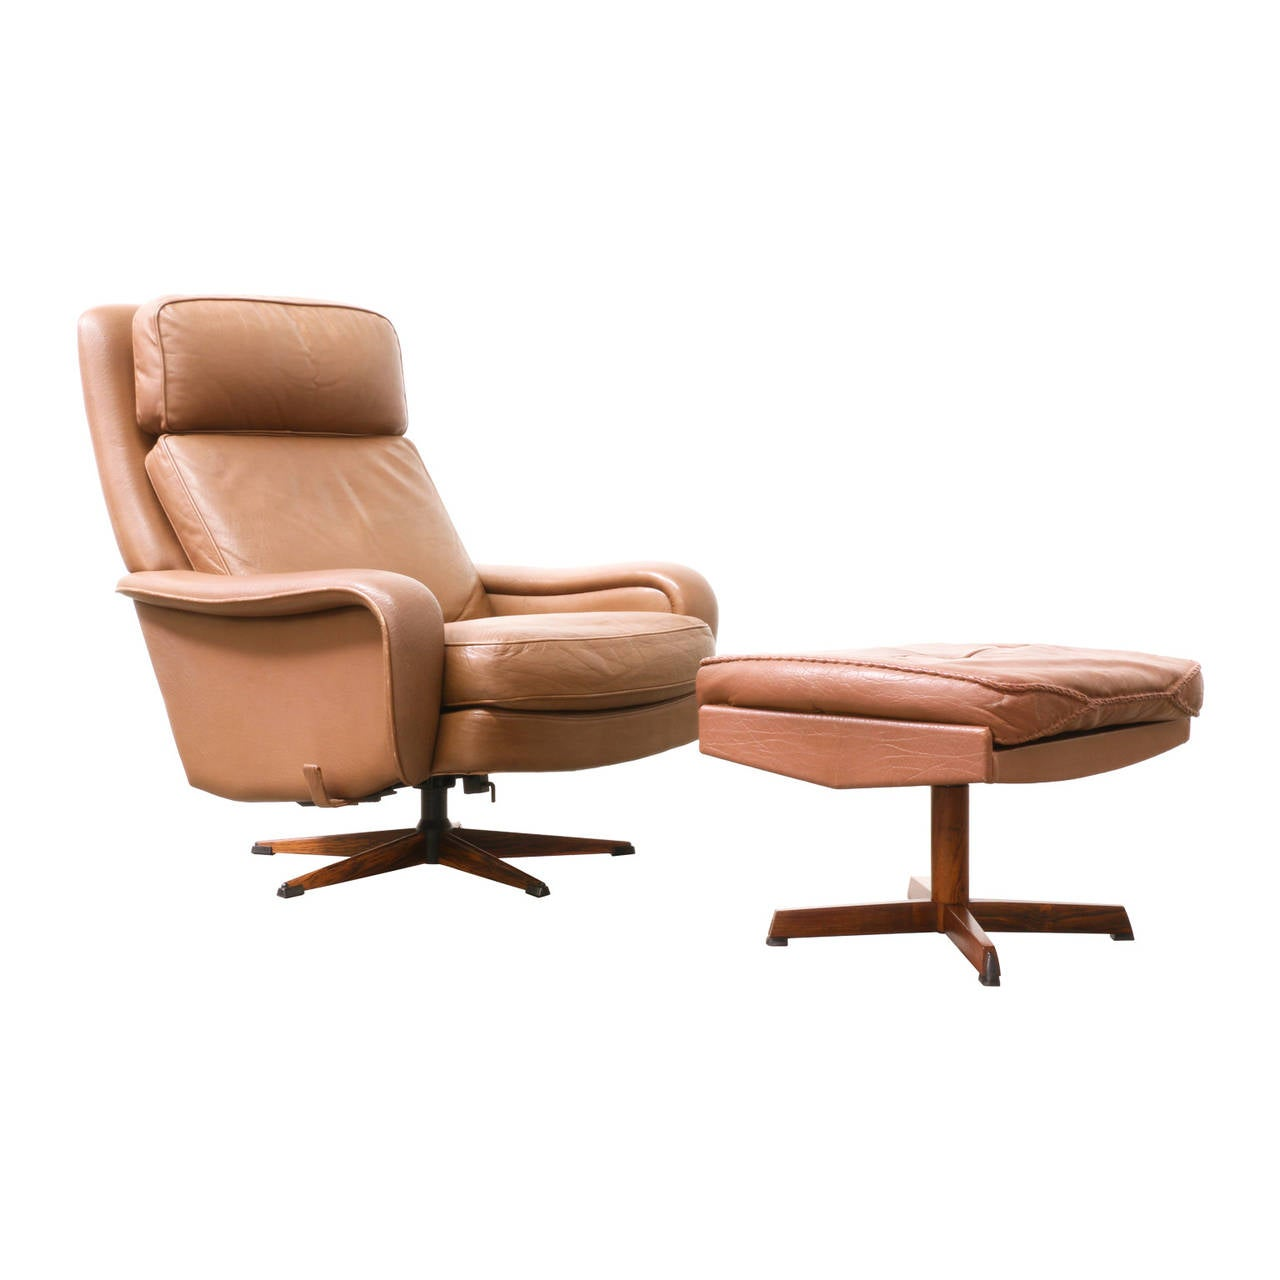 Danish modern leather lounge chair with ottoman at 1stdibs for Modern leather club chairs